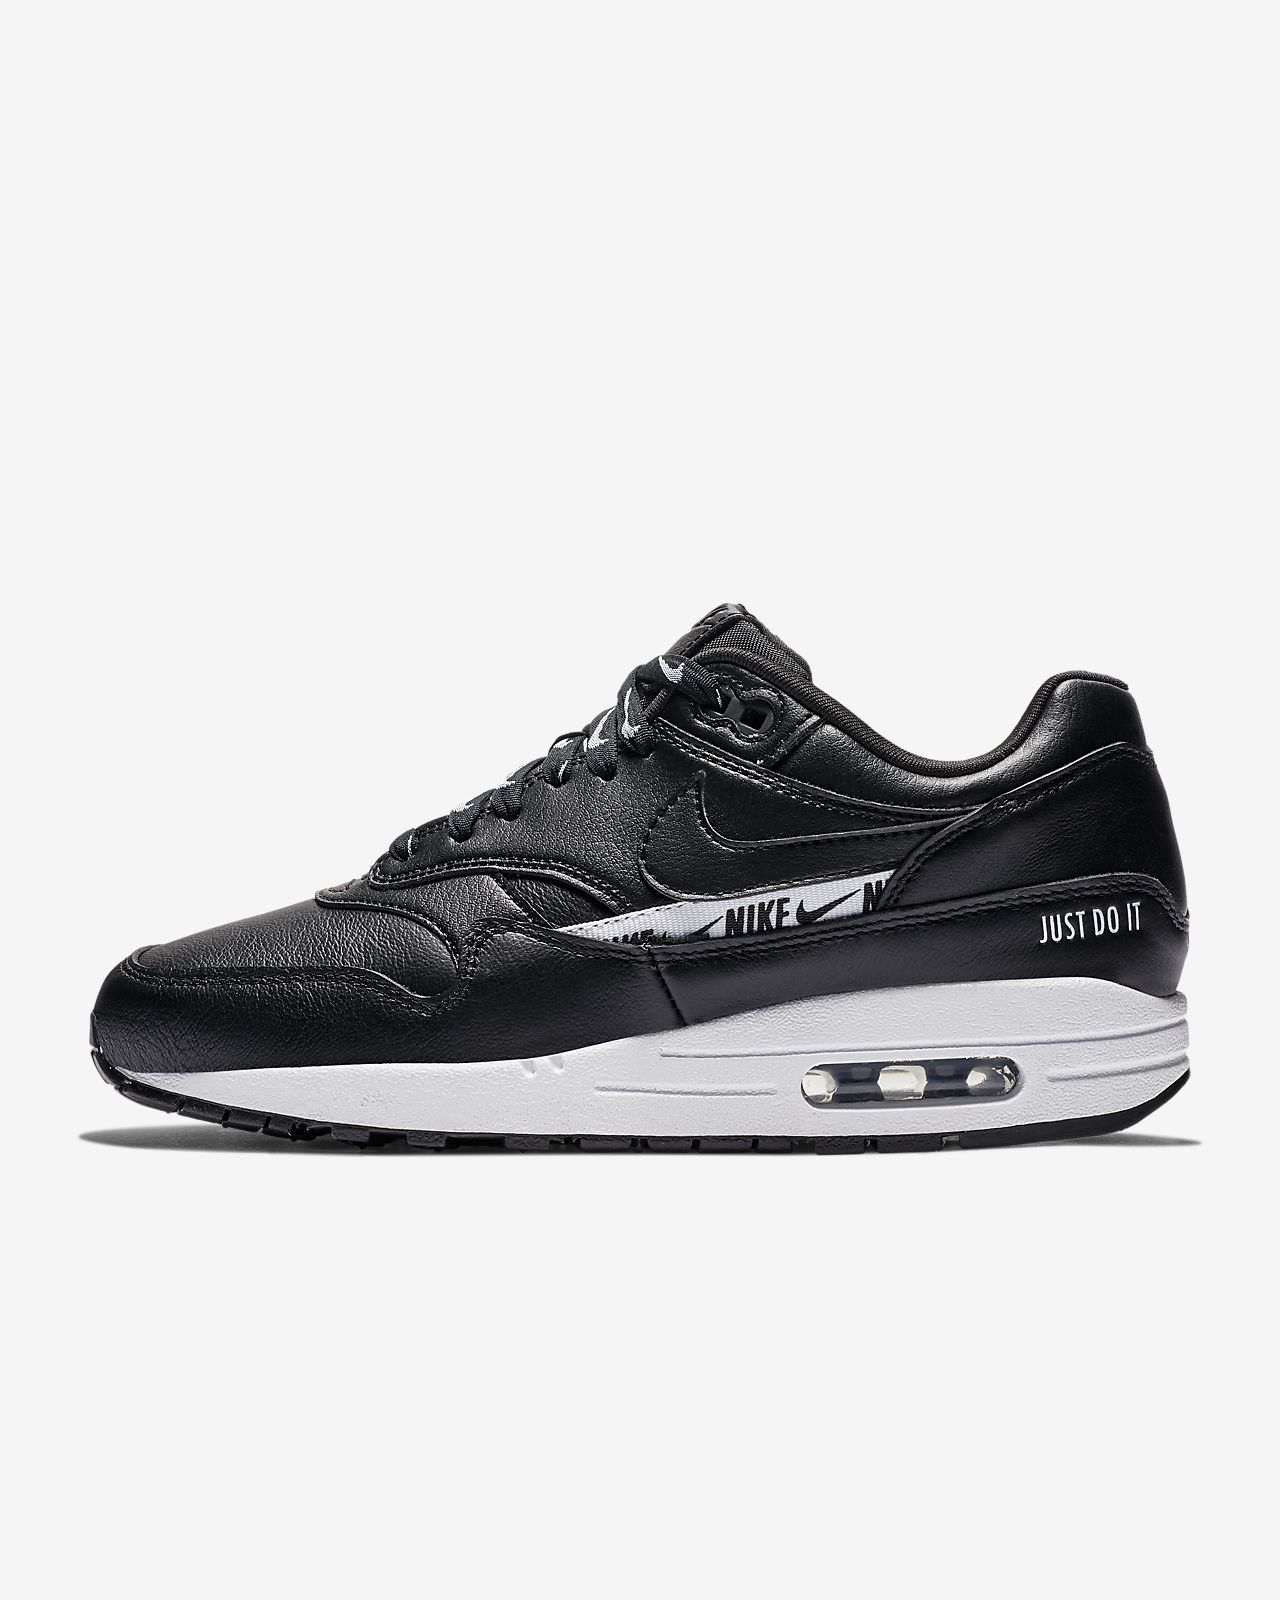 online store f6f21 fce16 ... Nike Air Max 1 SE Overbranded Damenschuh